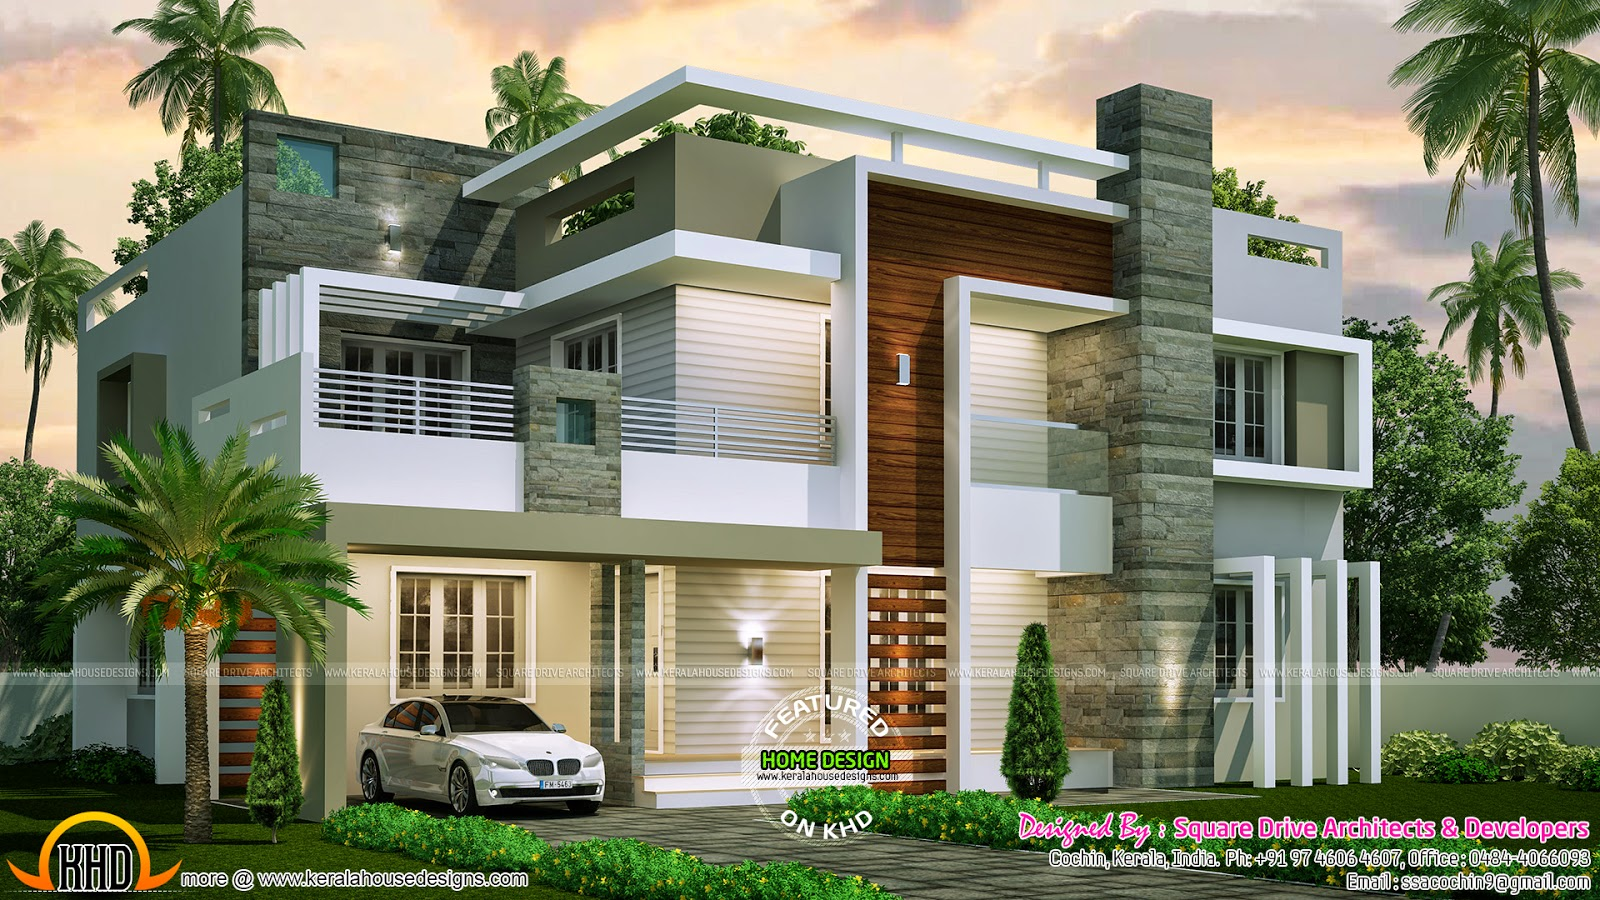 4 bedroom contemporary home design kerala home design for Big modern house designs